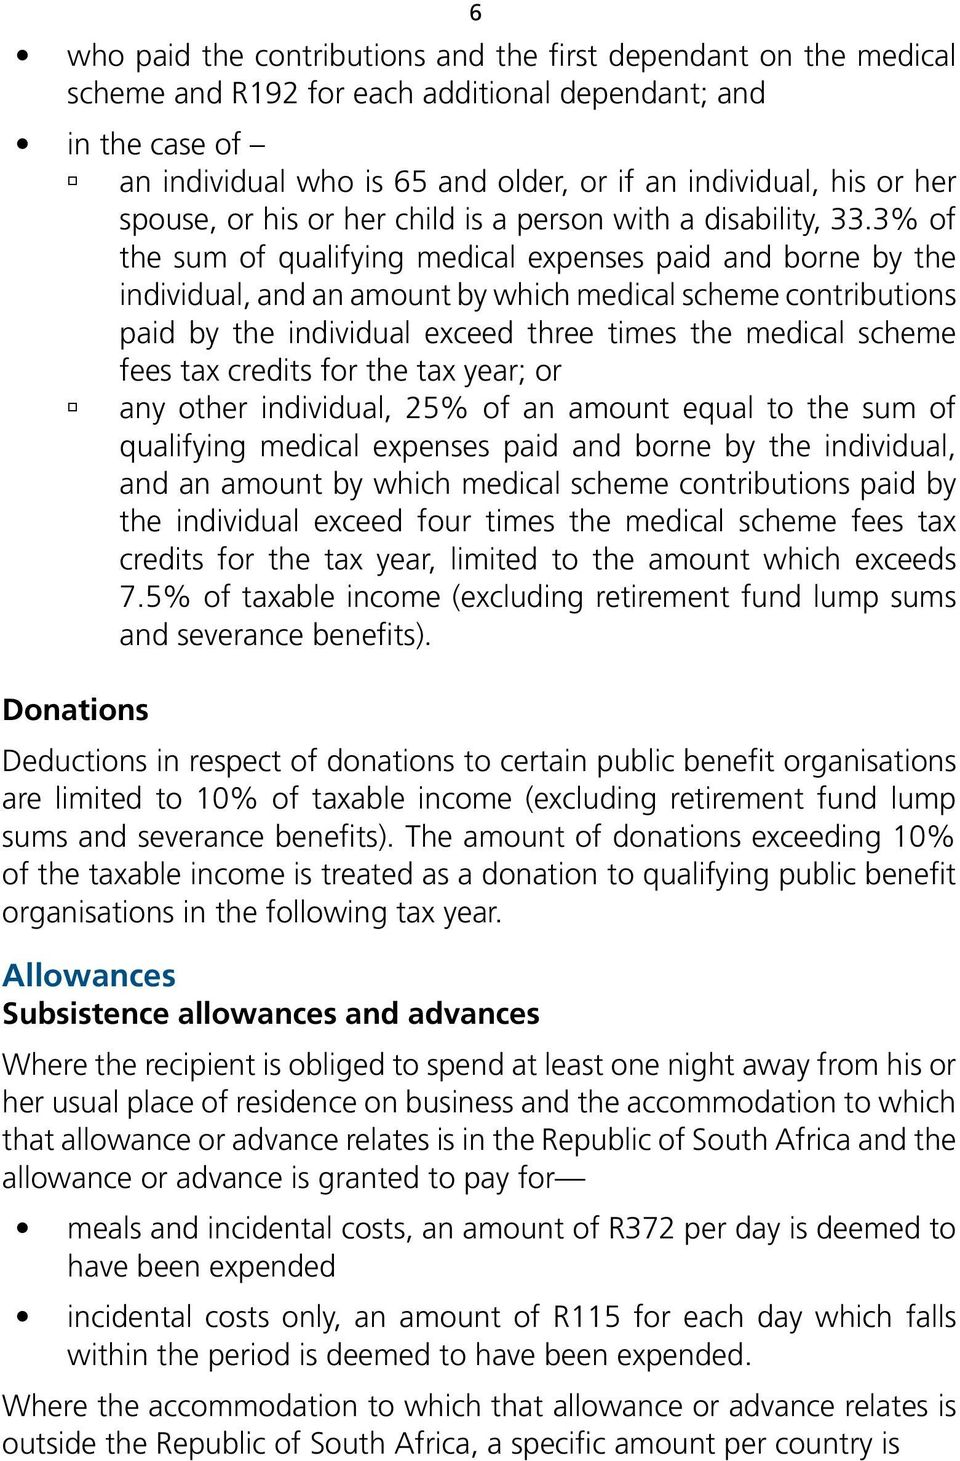 3% of the sum of qualifying medical expenses paid and borne by the individual, and an amount by which medical scheme contributions paid by the individual exceed three times the medical scheme fees